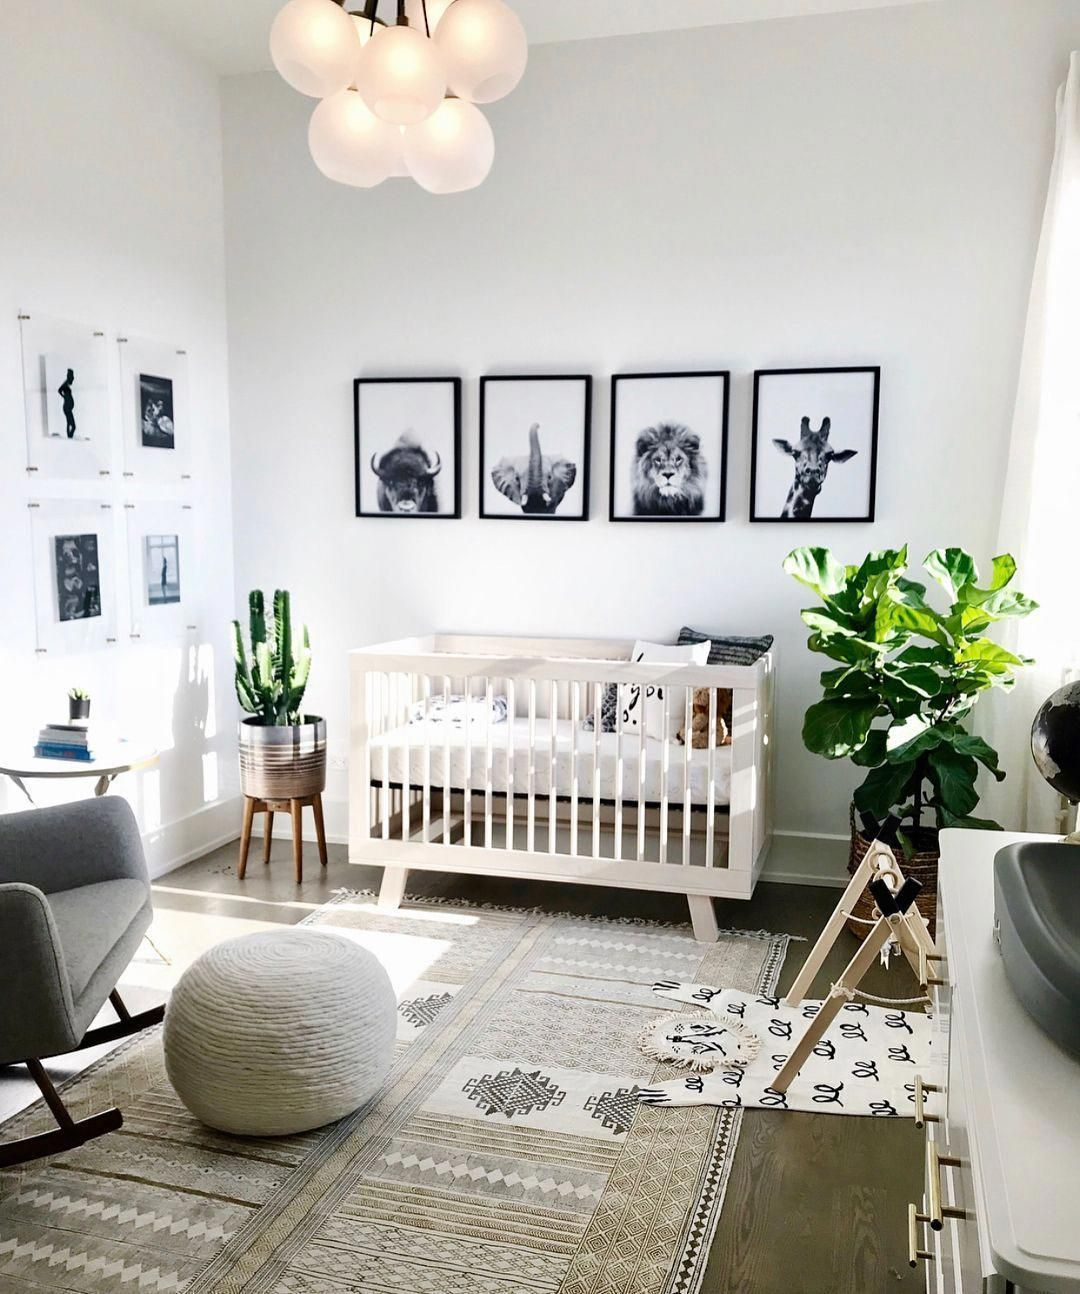 22 Baby Furniture Sets For Your Little